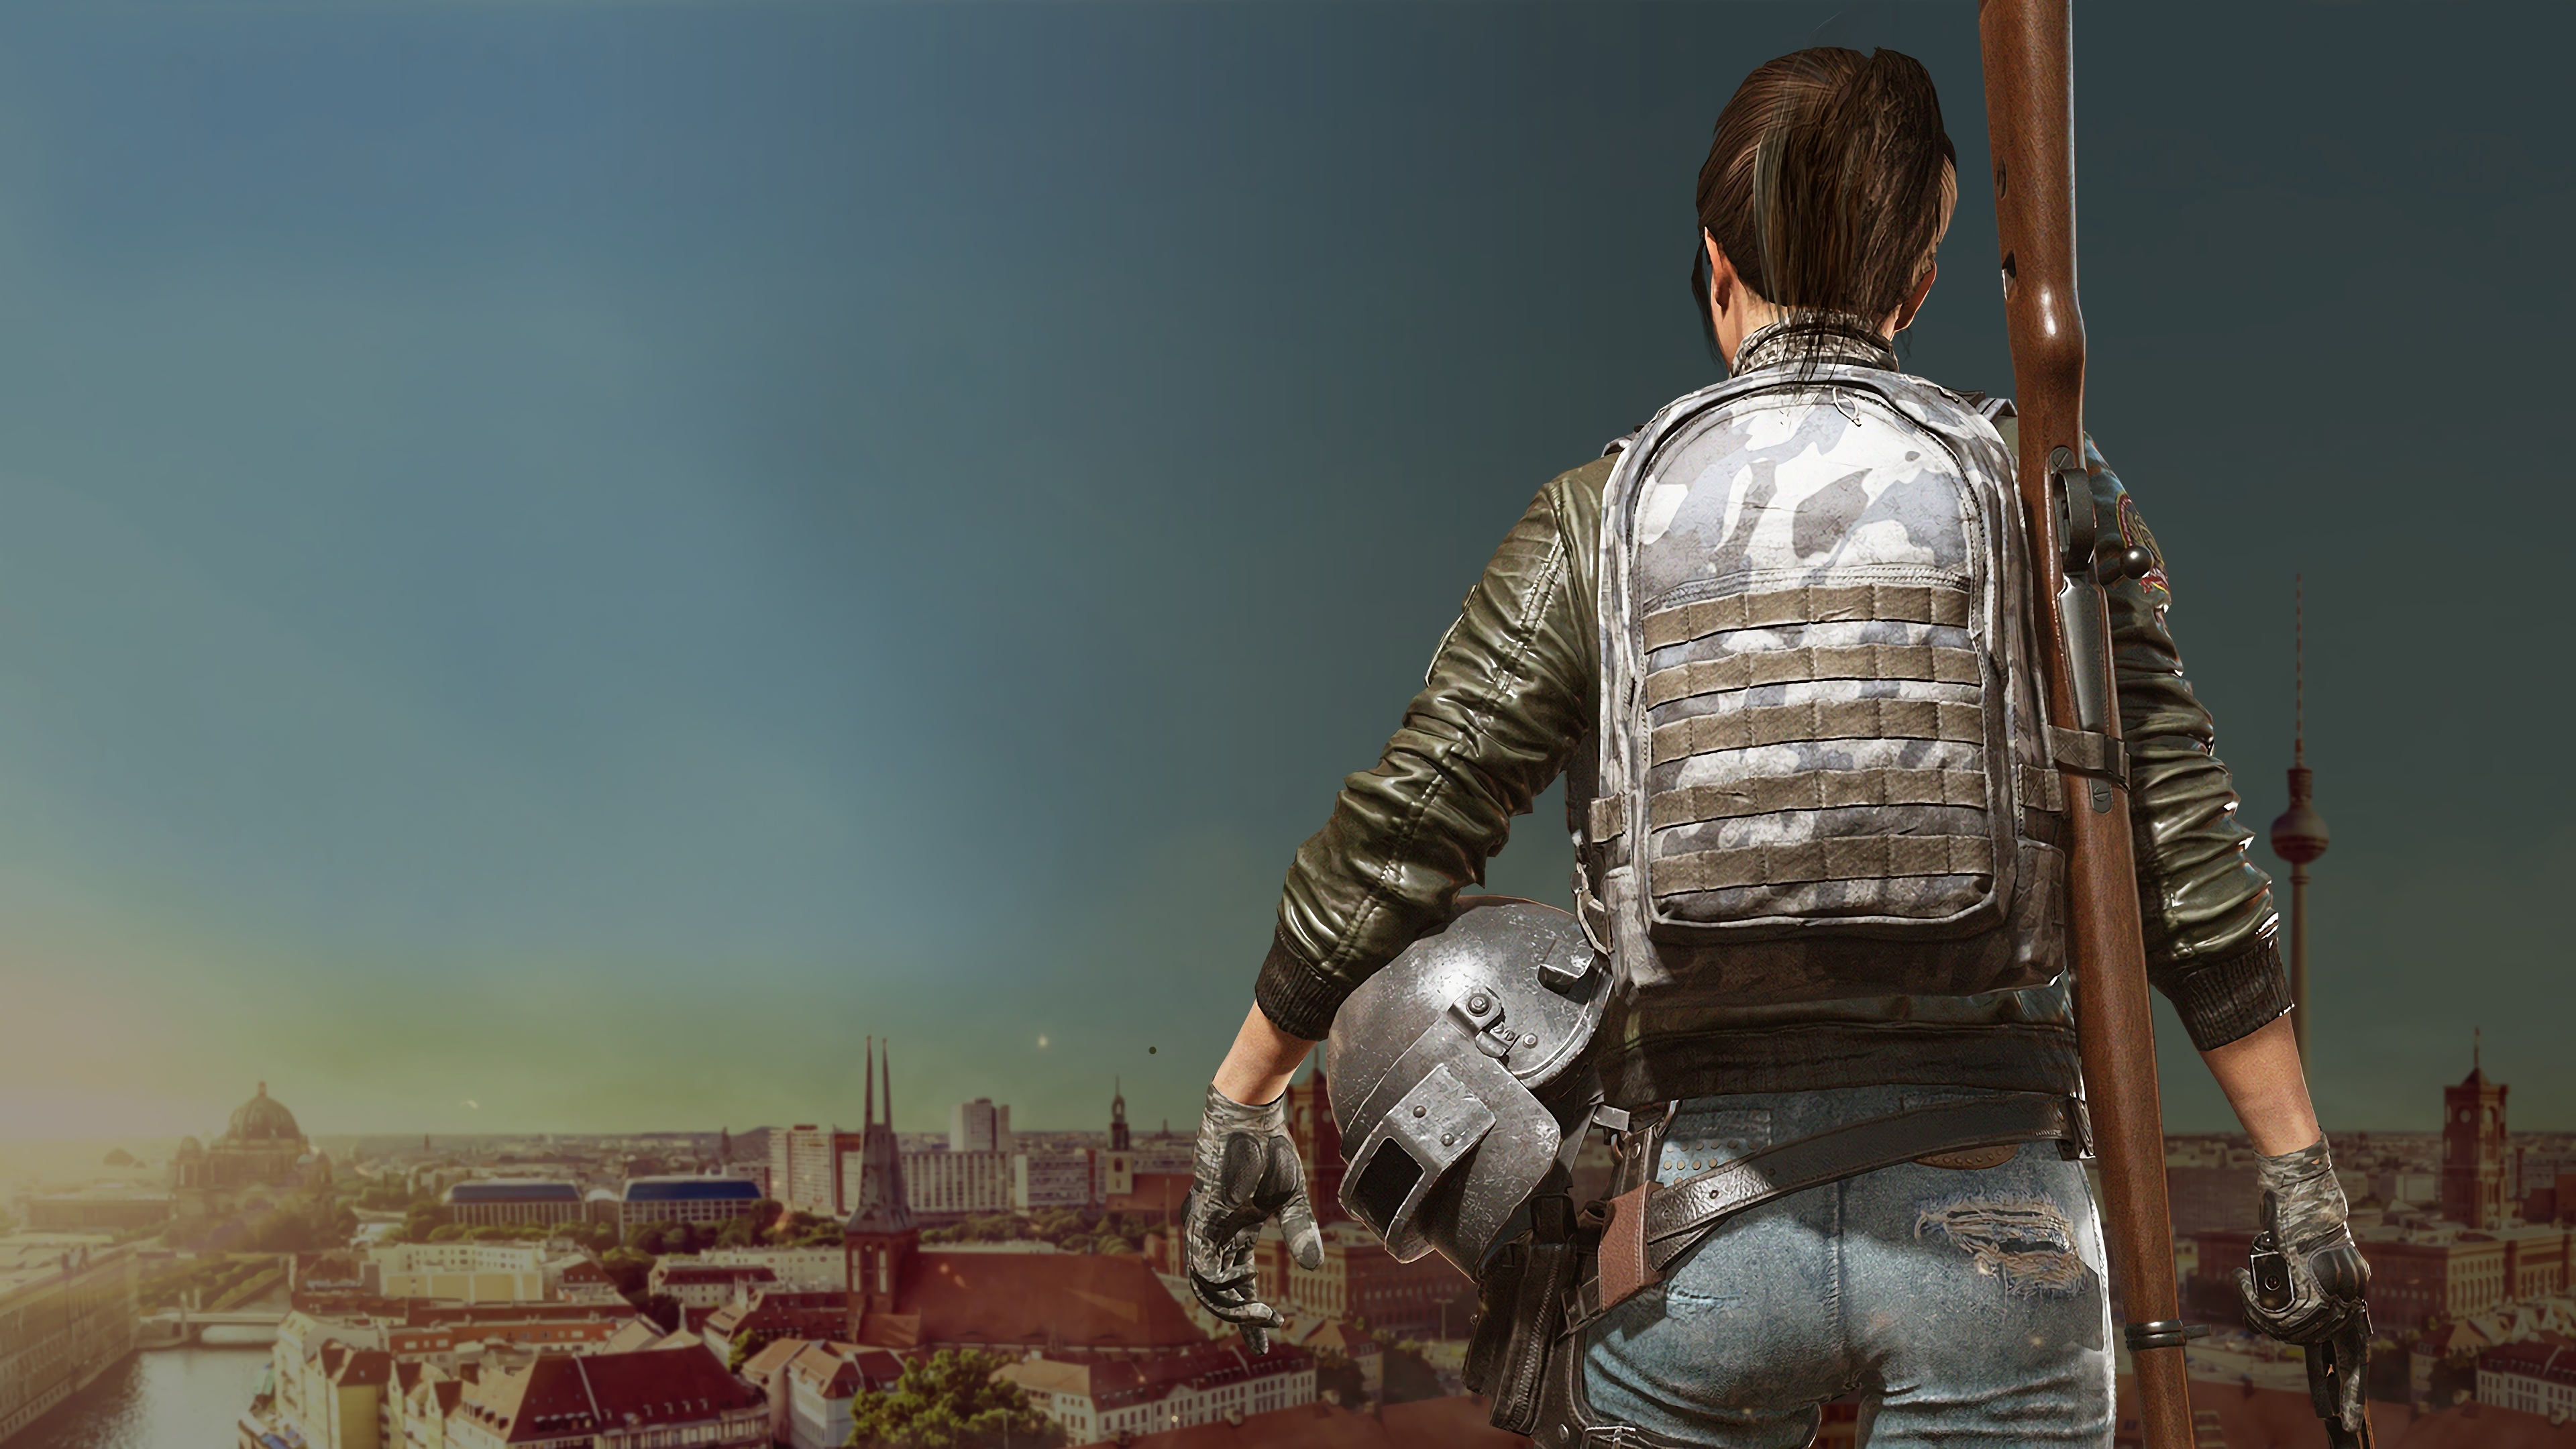 Pubg Wallpaper Hd Pic: Game Girl Pubg 4k, HD Games, 4k Wallpapers, Images